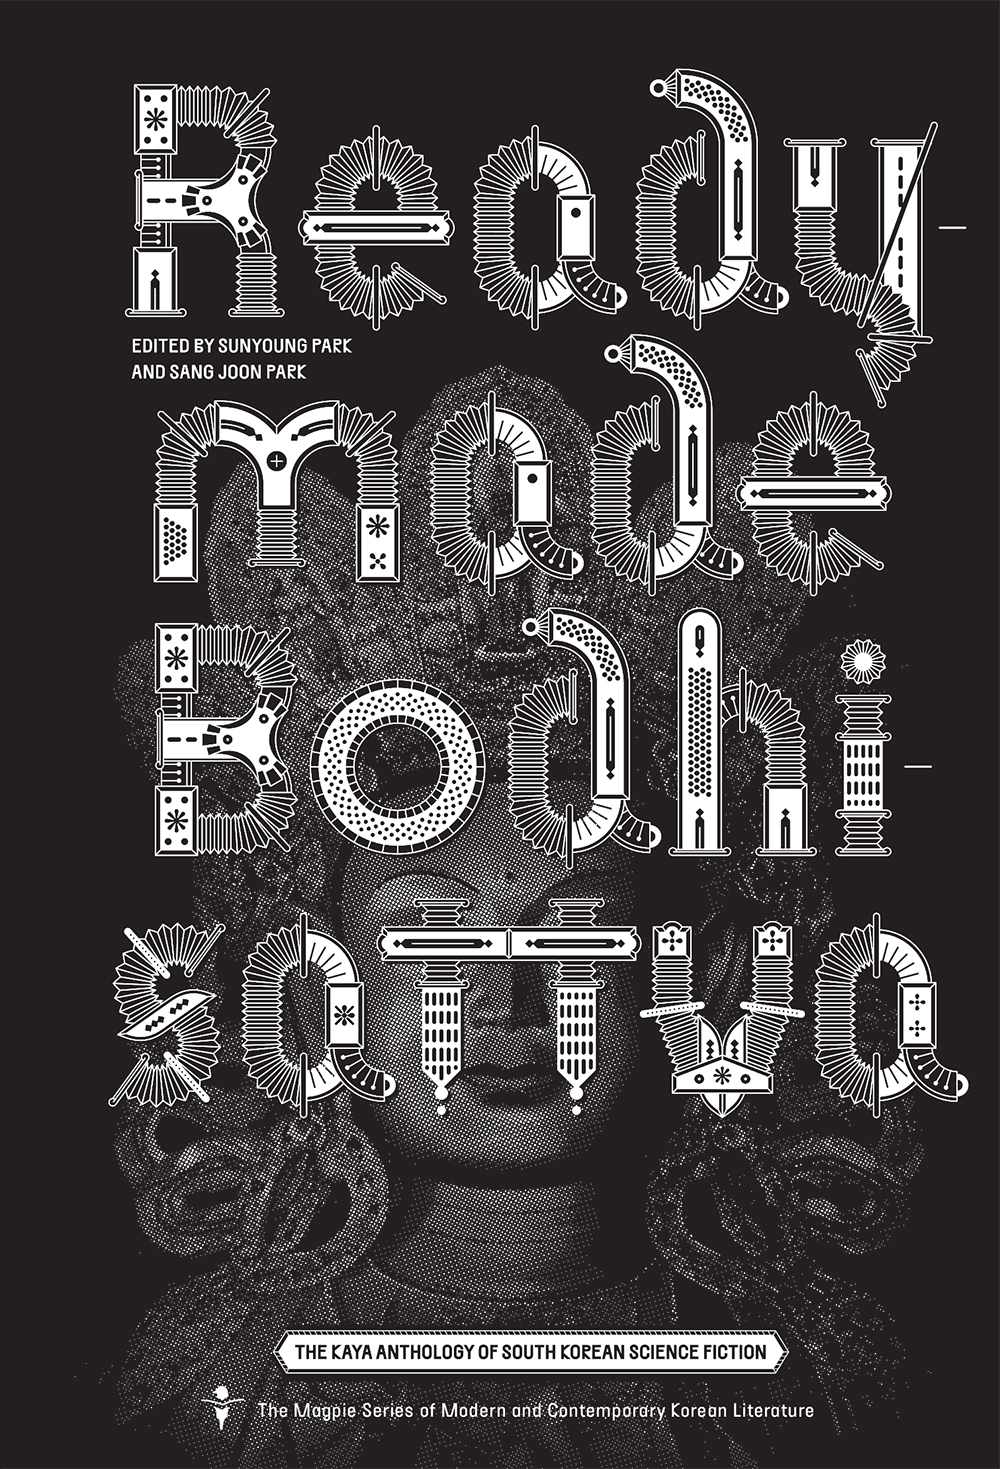 Readymade Bodhisattva: The Kaya Anthology of South Korean Science Fiction